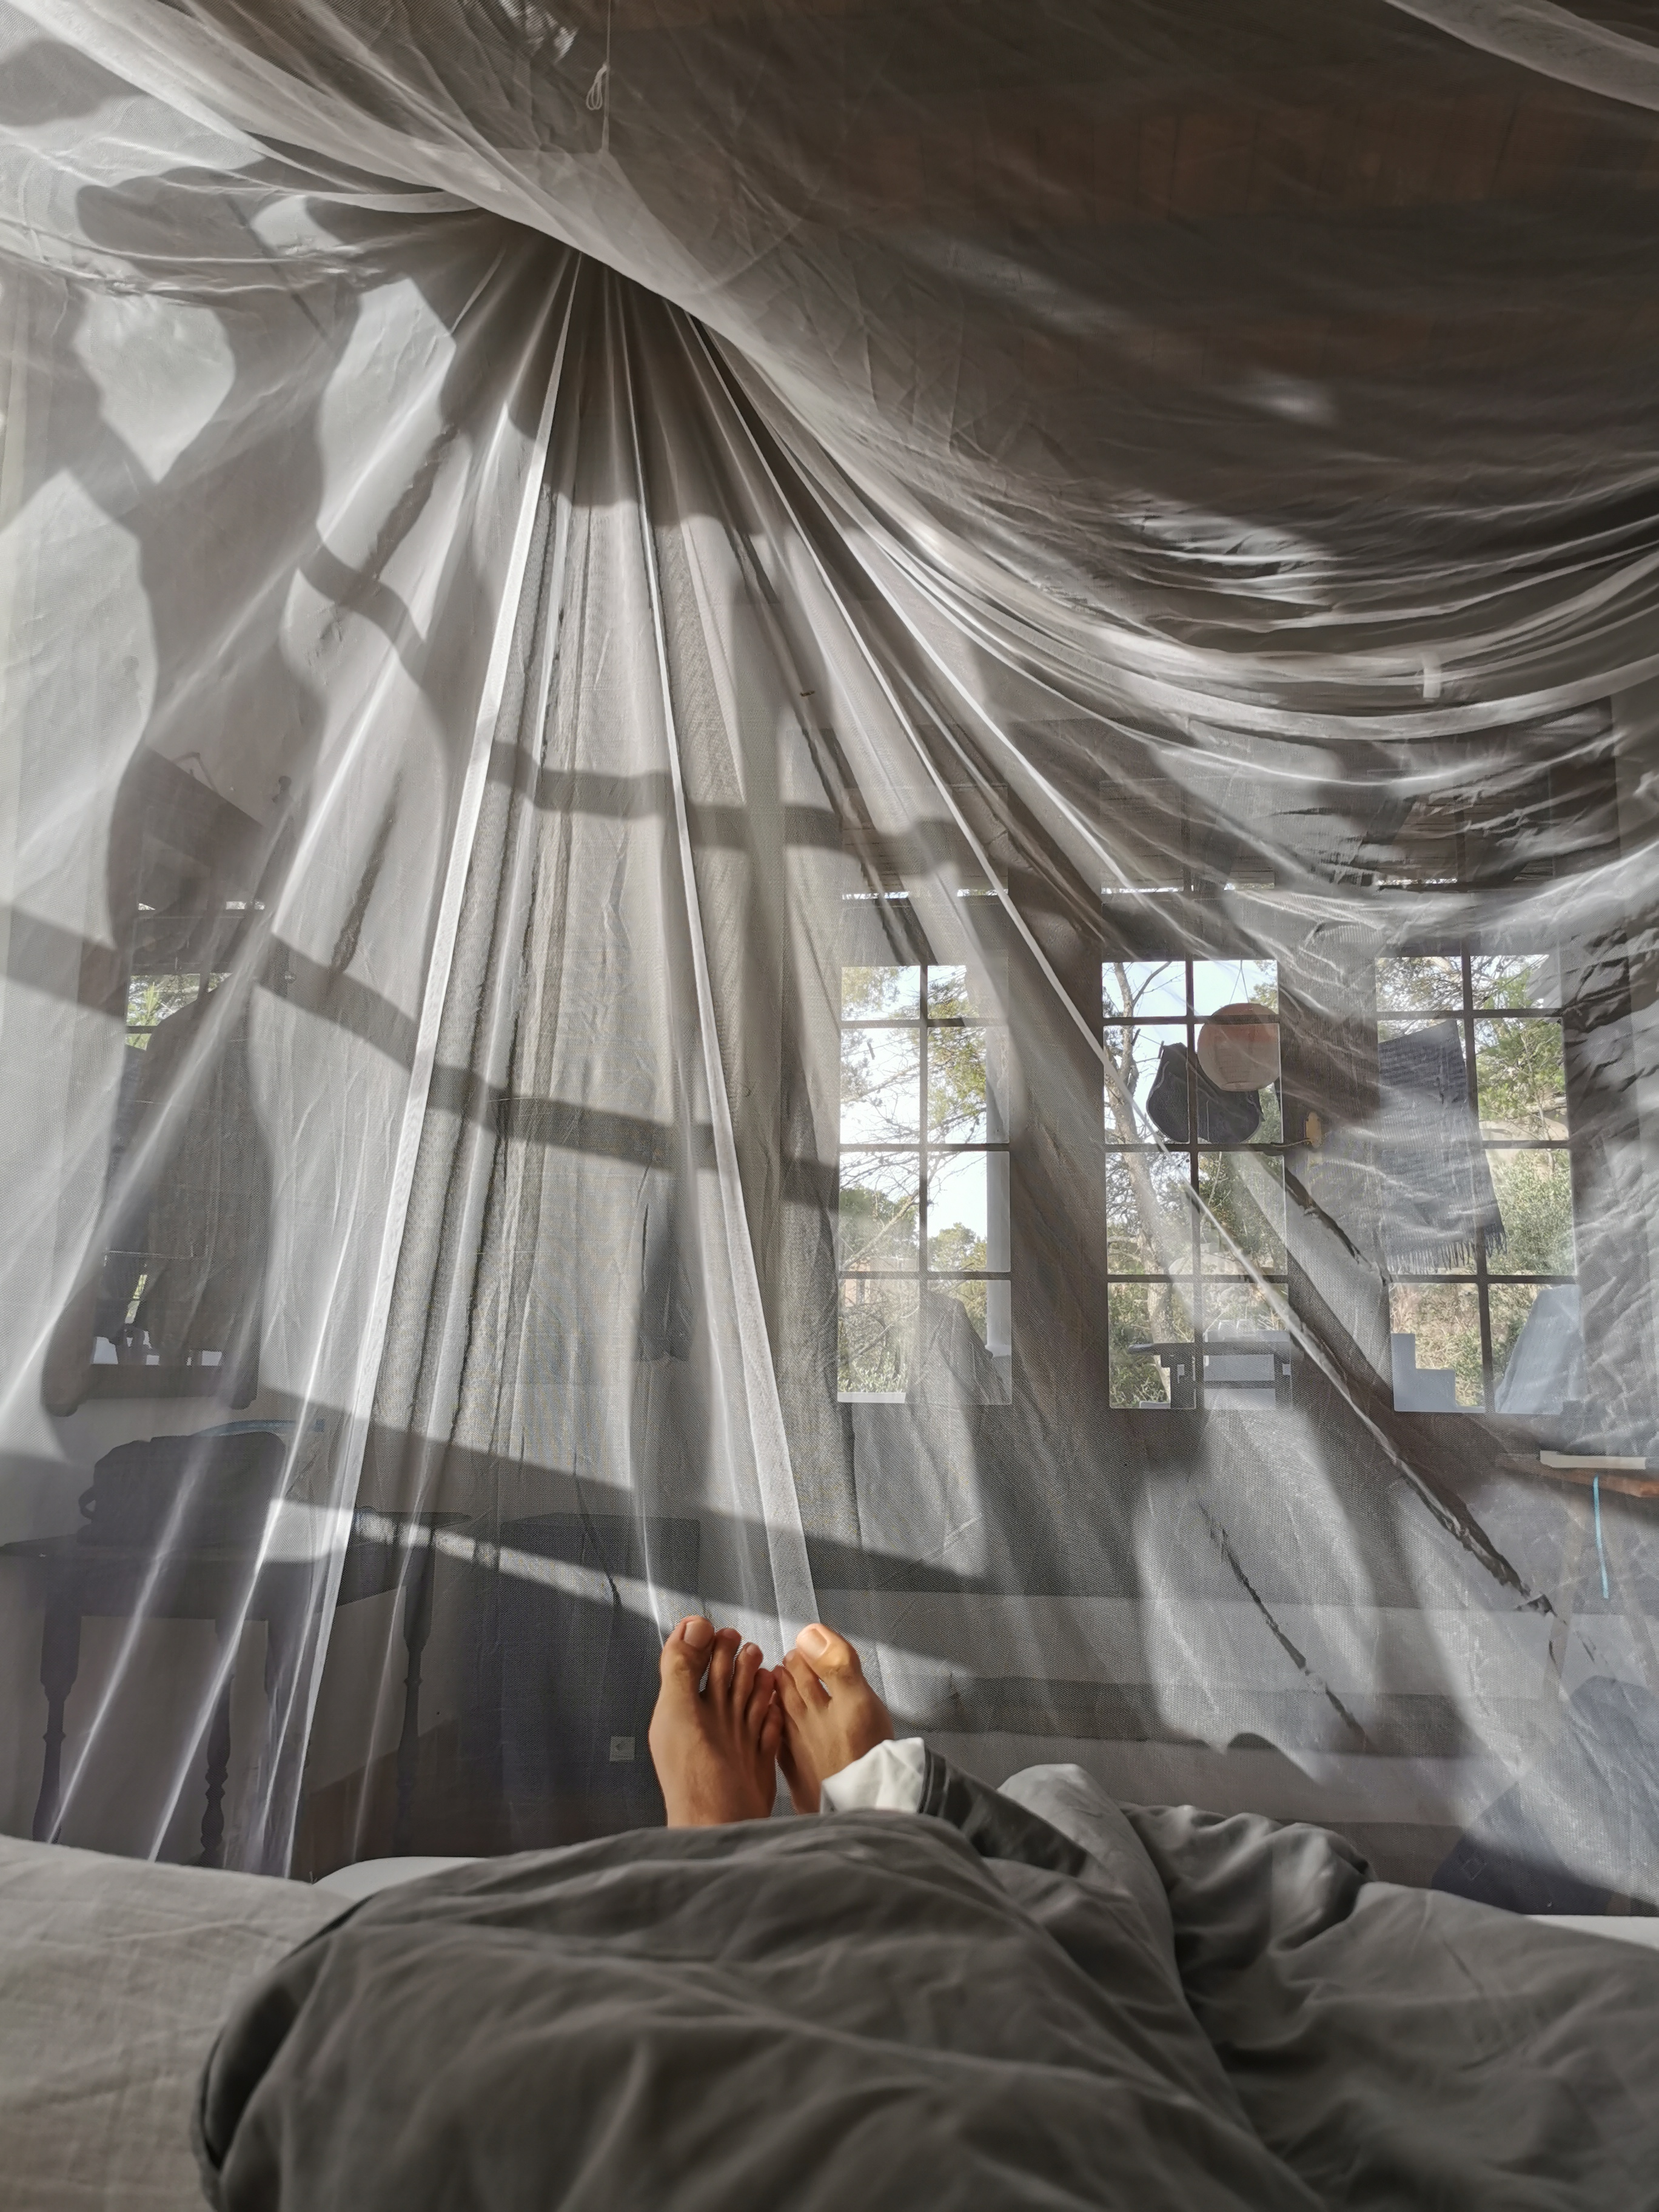 Cozy morning under the mosquito net